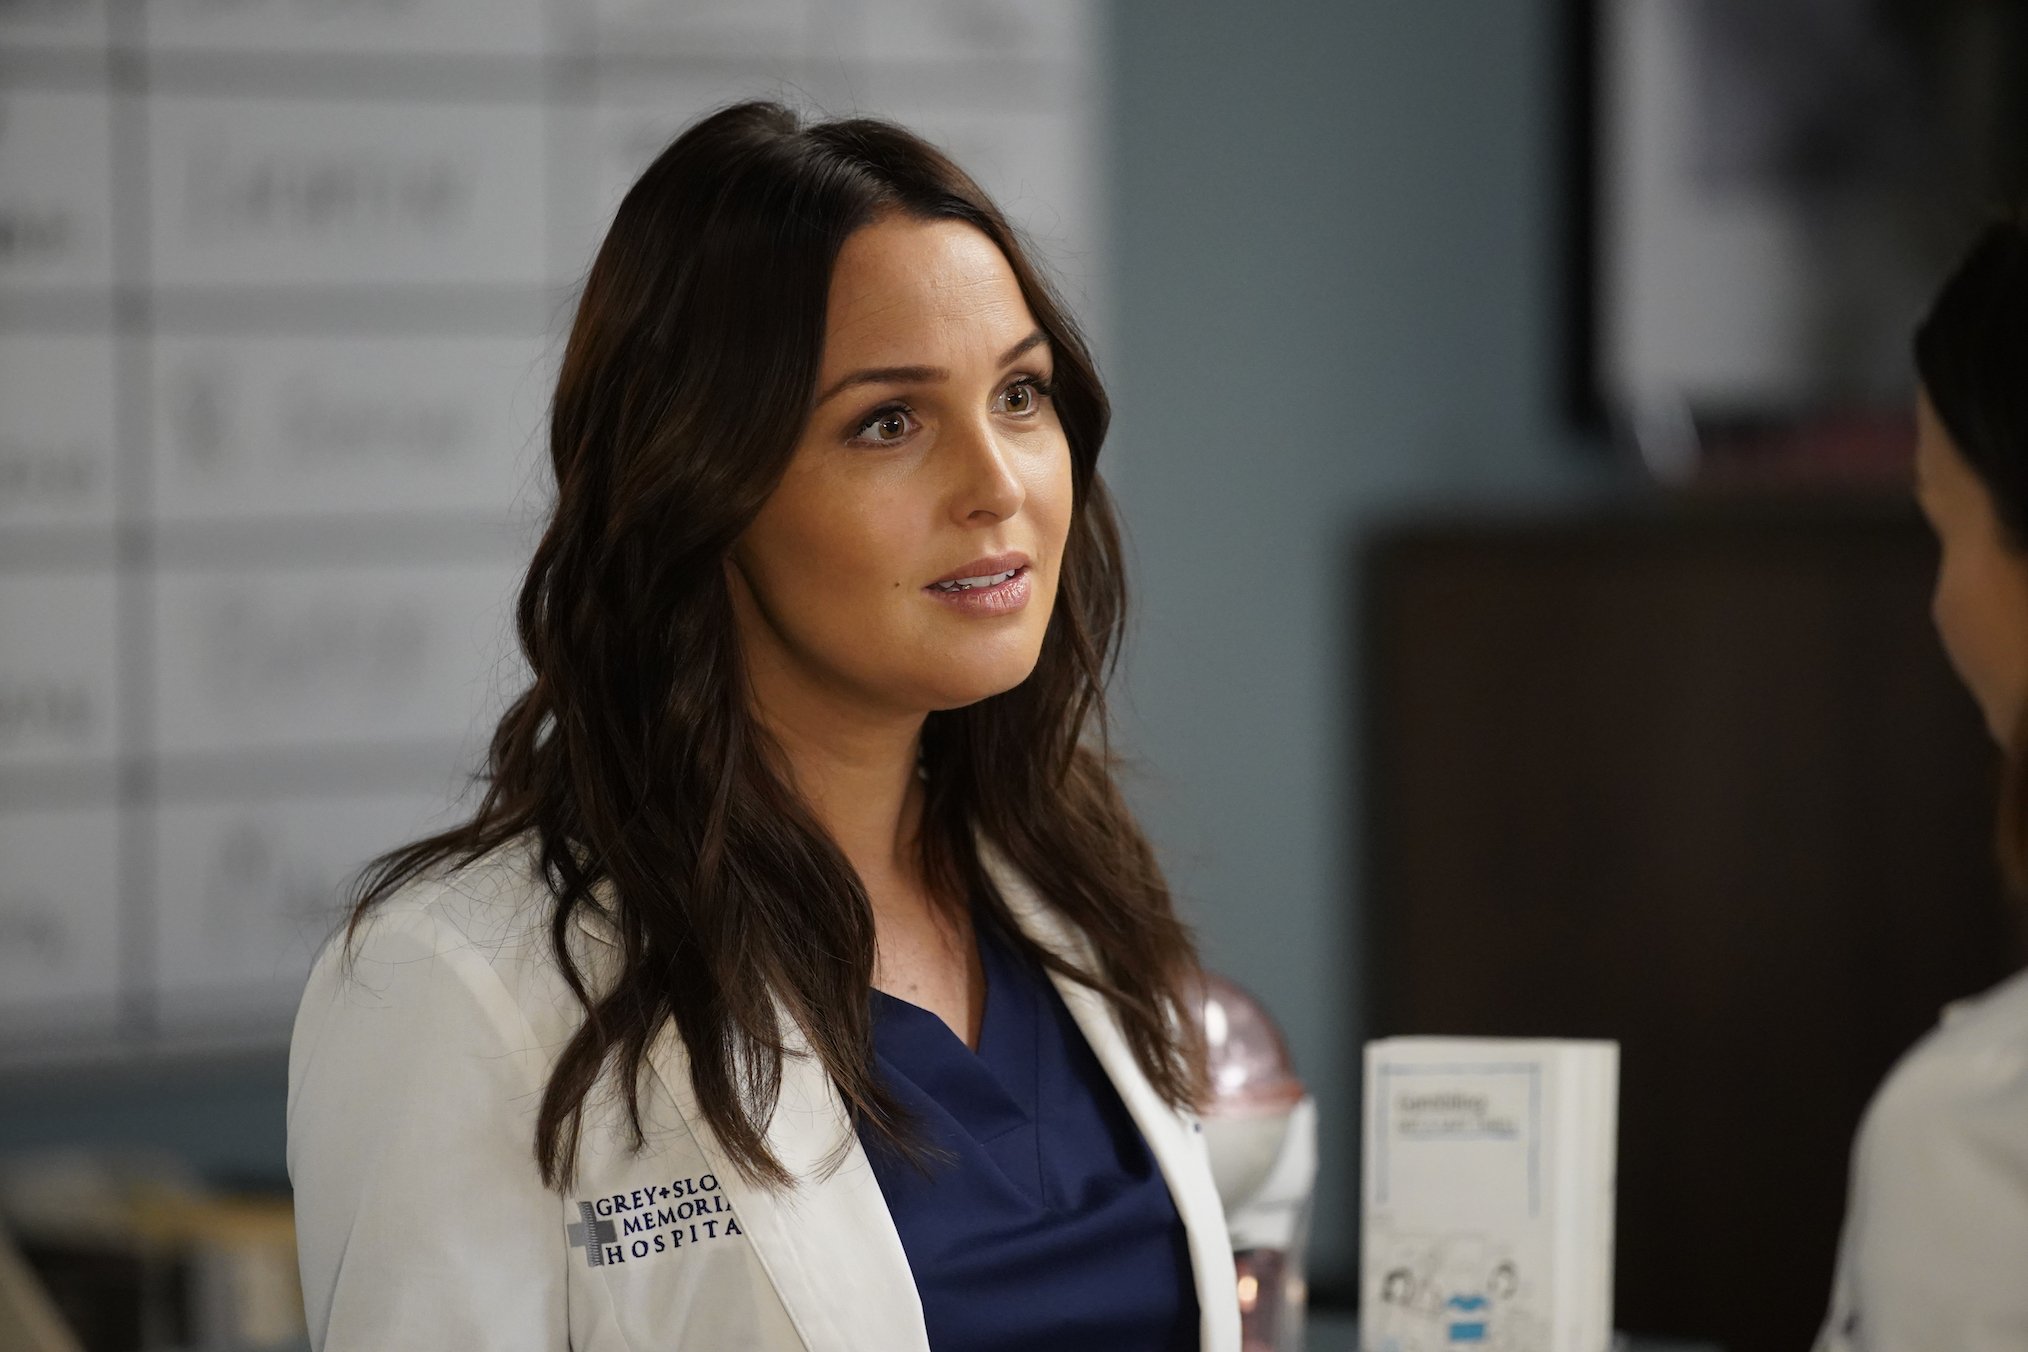 Camilla Luddington Grey's Anatomy Season 16 Episode 13 Jo Karev